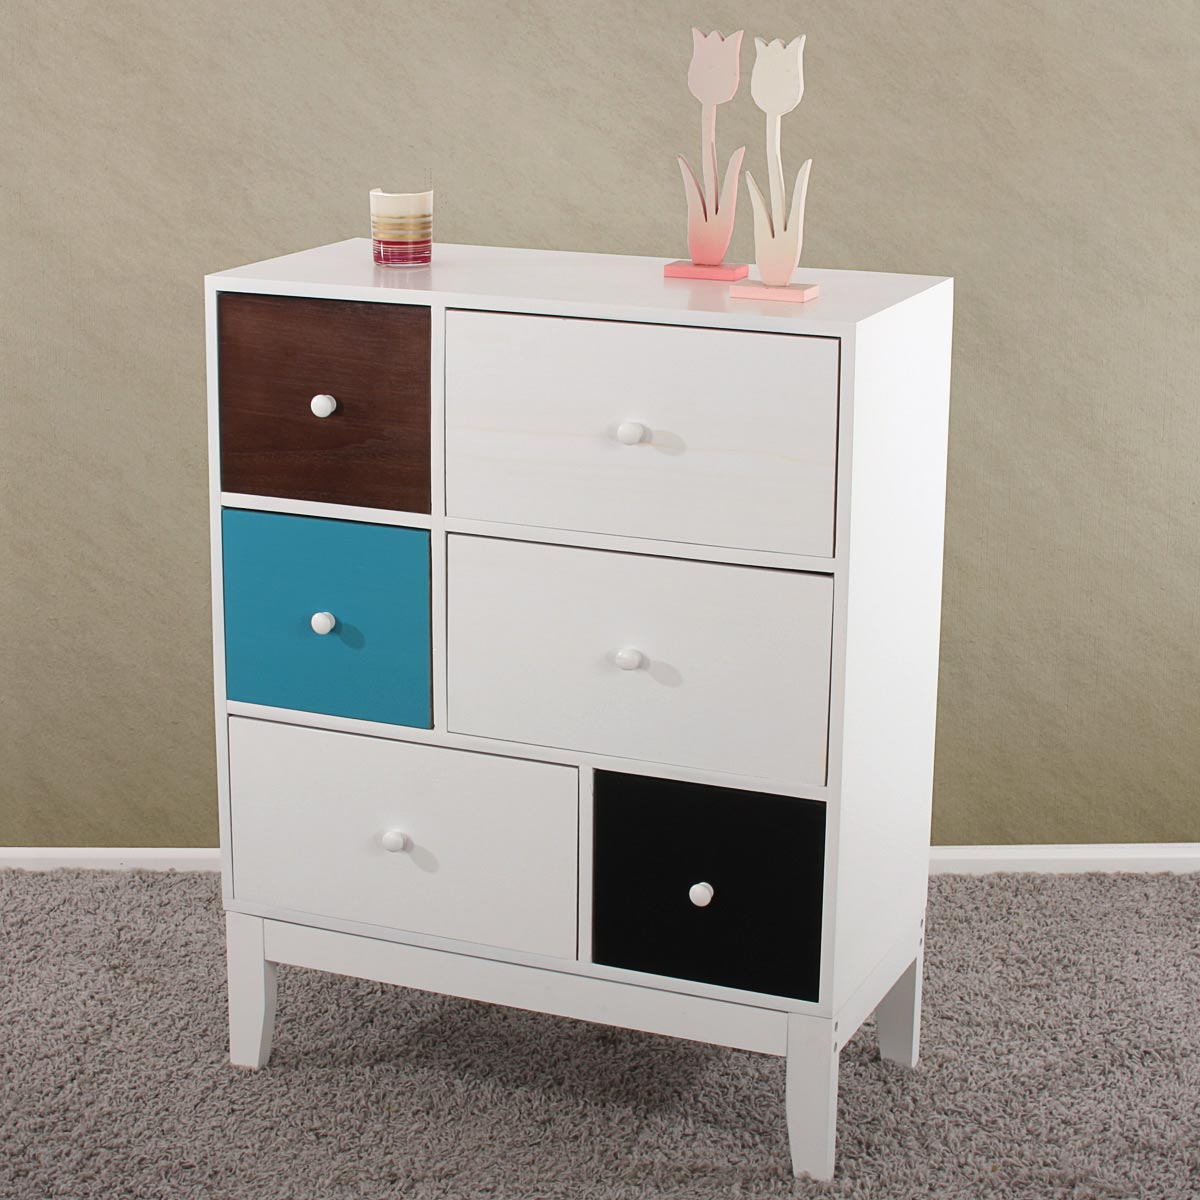 kommode sideboard schrank 94x74x35cm 6 schubladen patchwork ebay. Black Bedroom Furniture Sets. Home Design Ideas